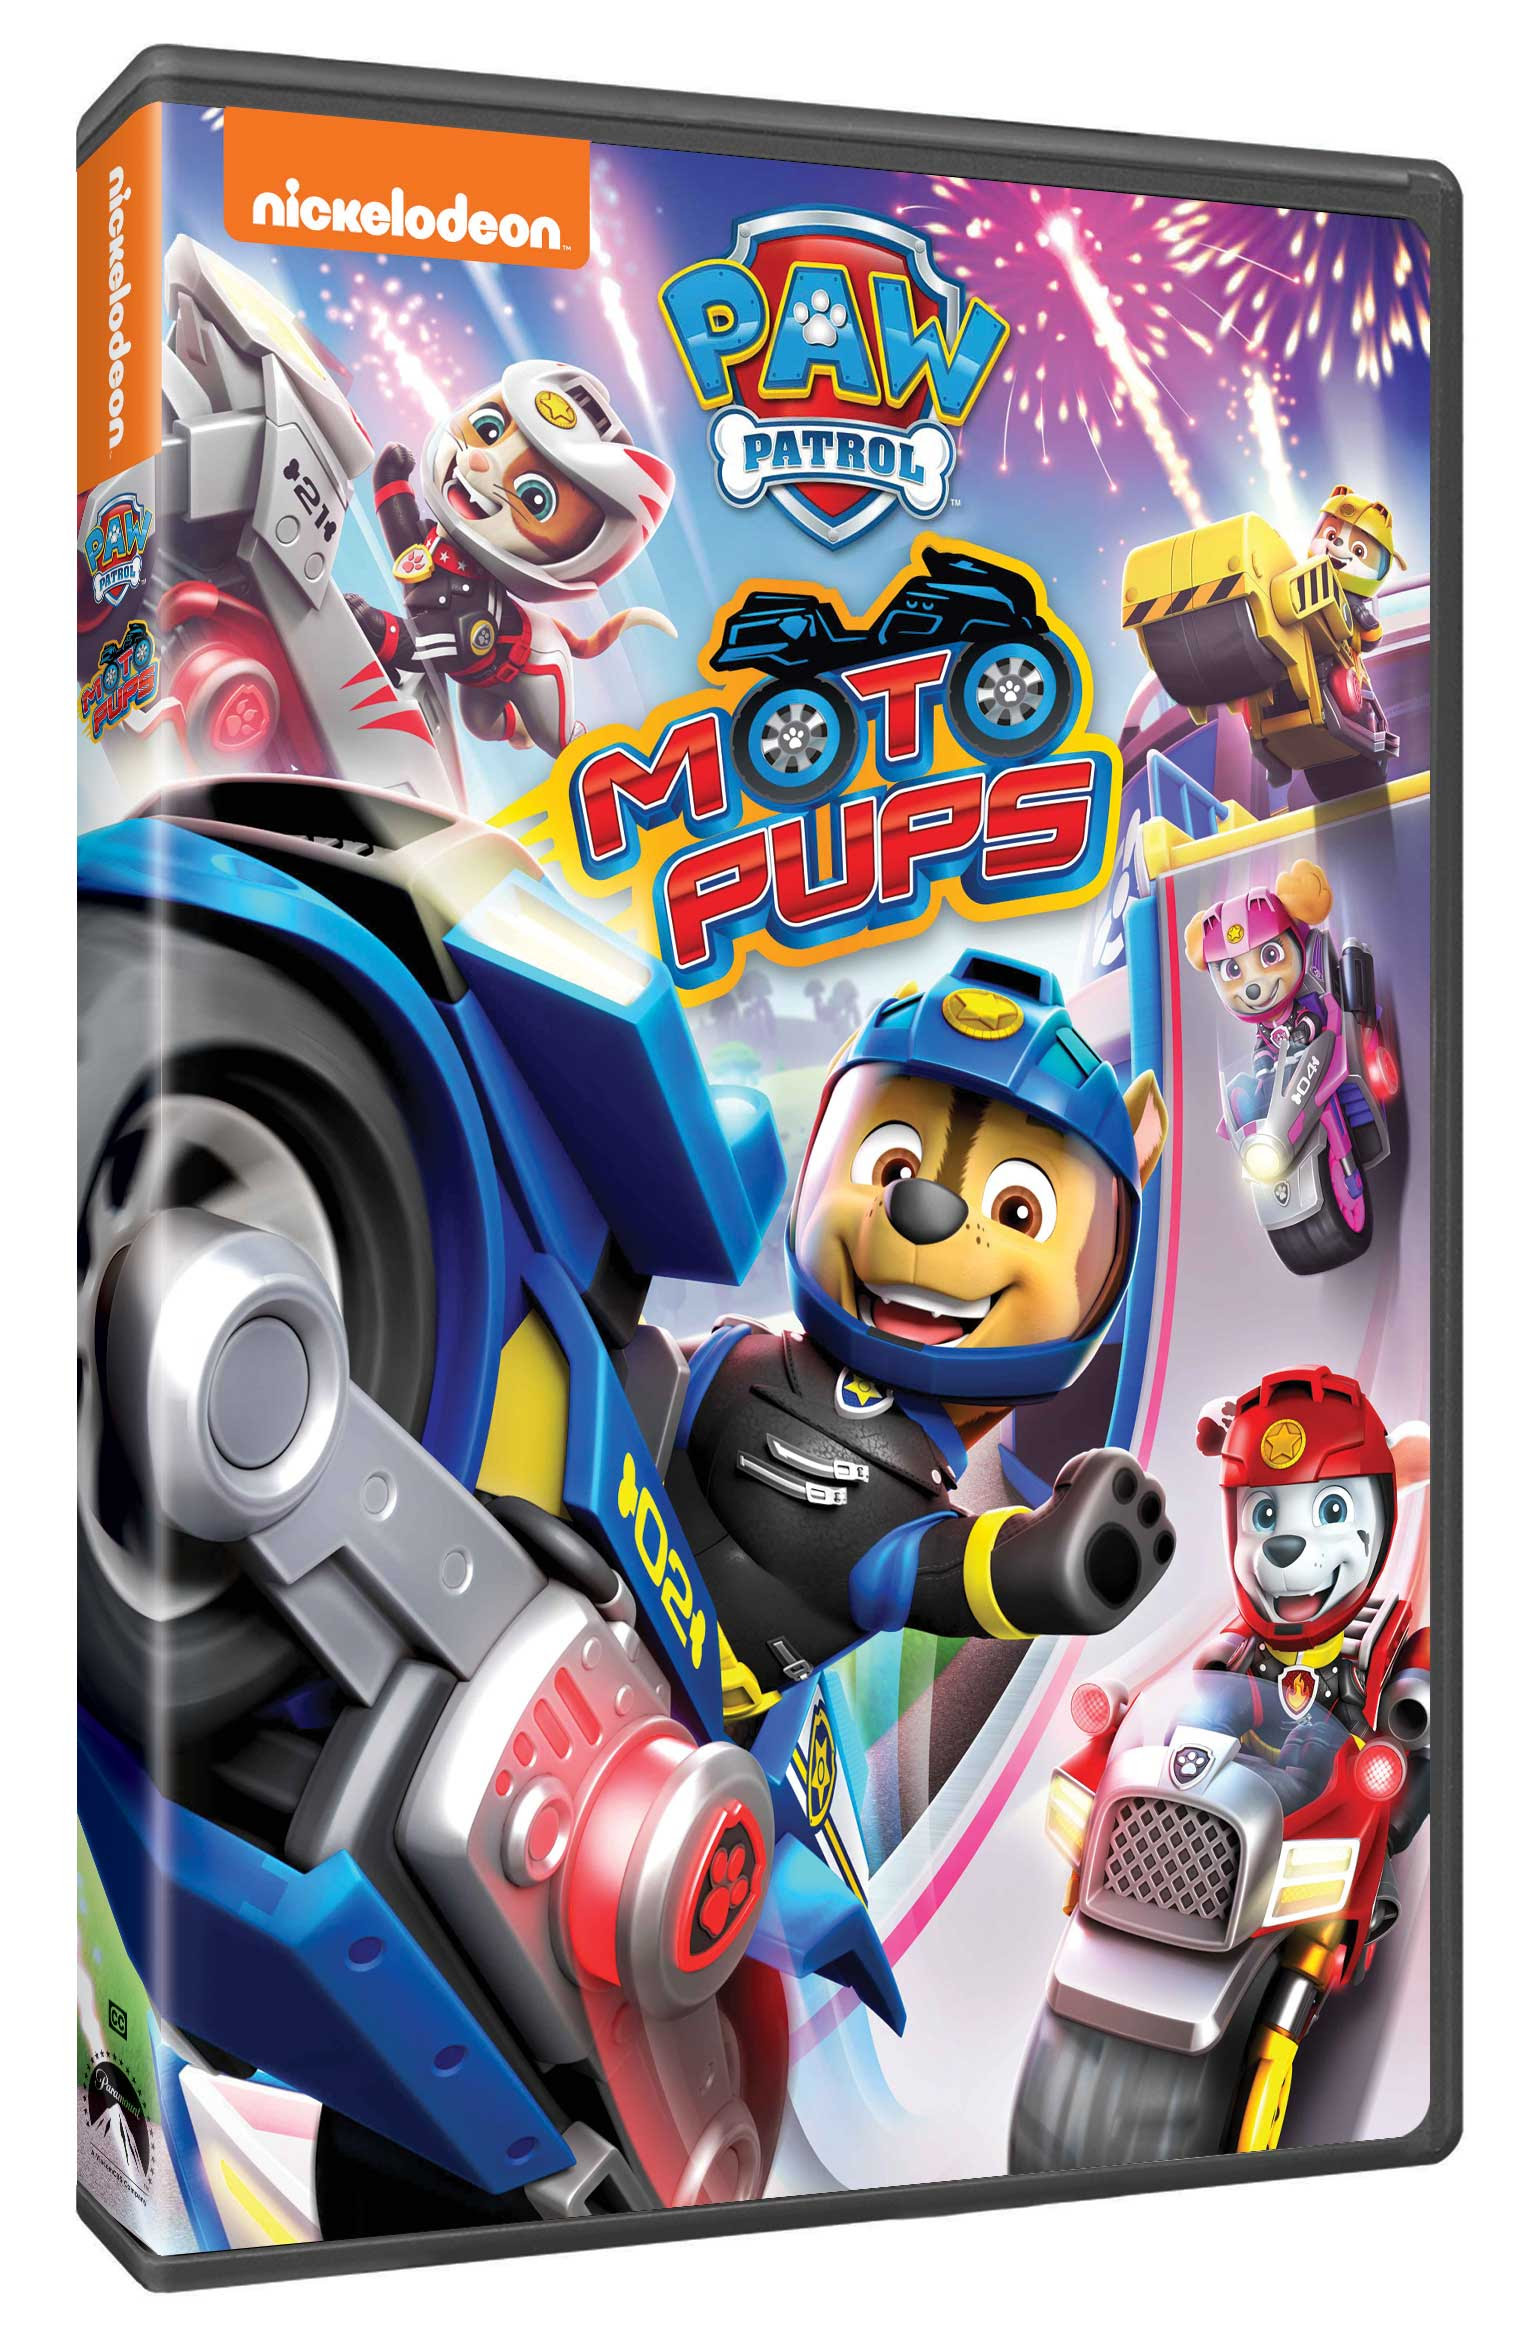 PAW Patrol: Moto Pups is coming to DVD on  June 1